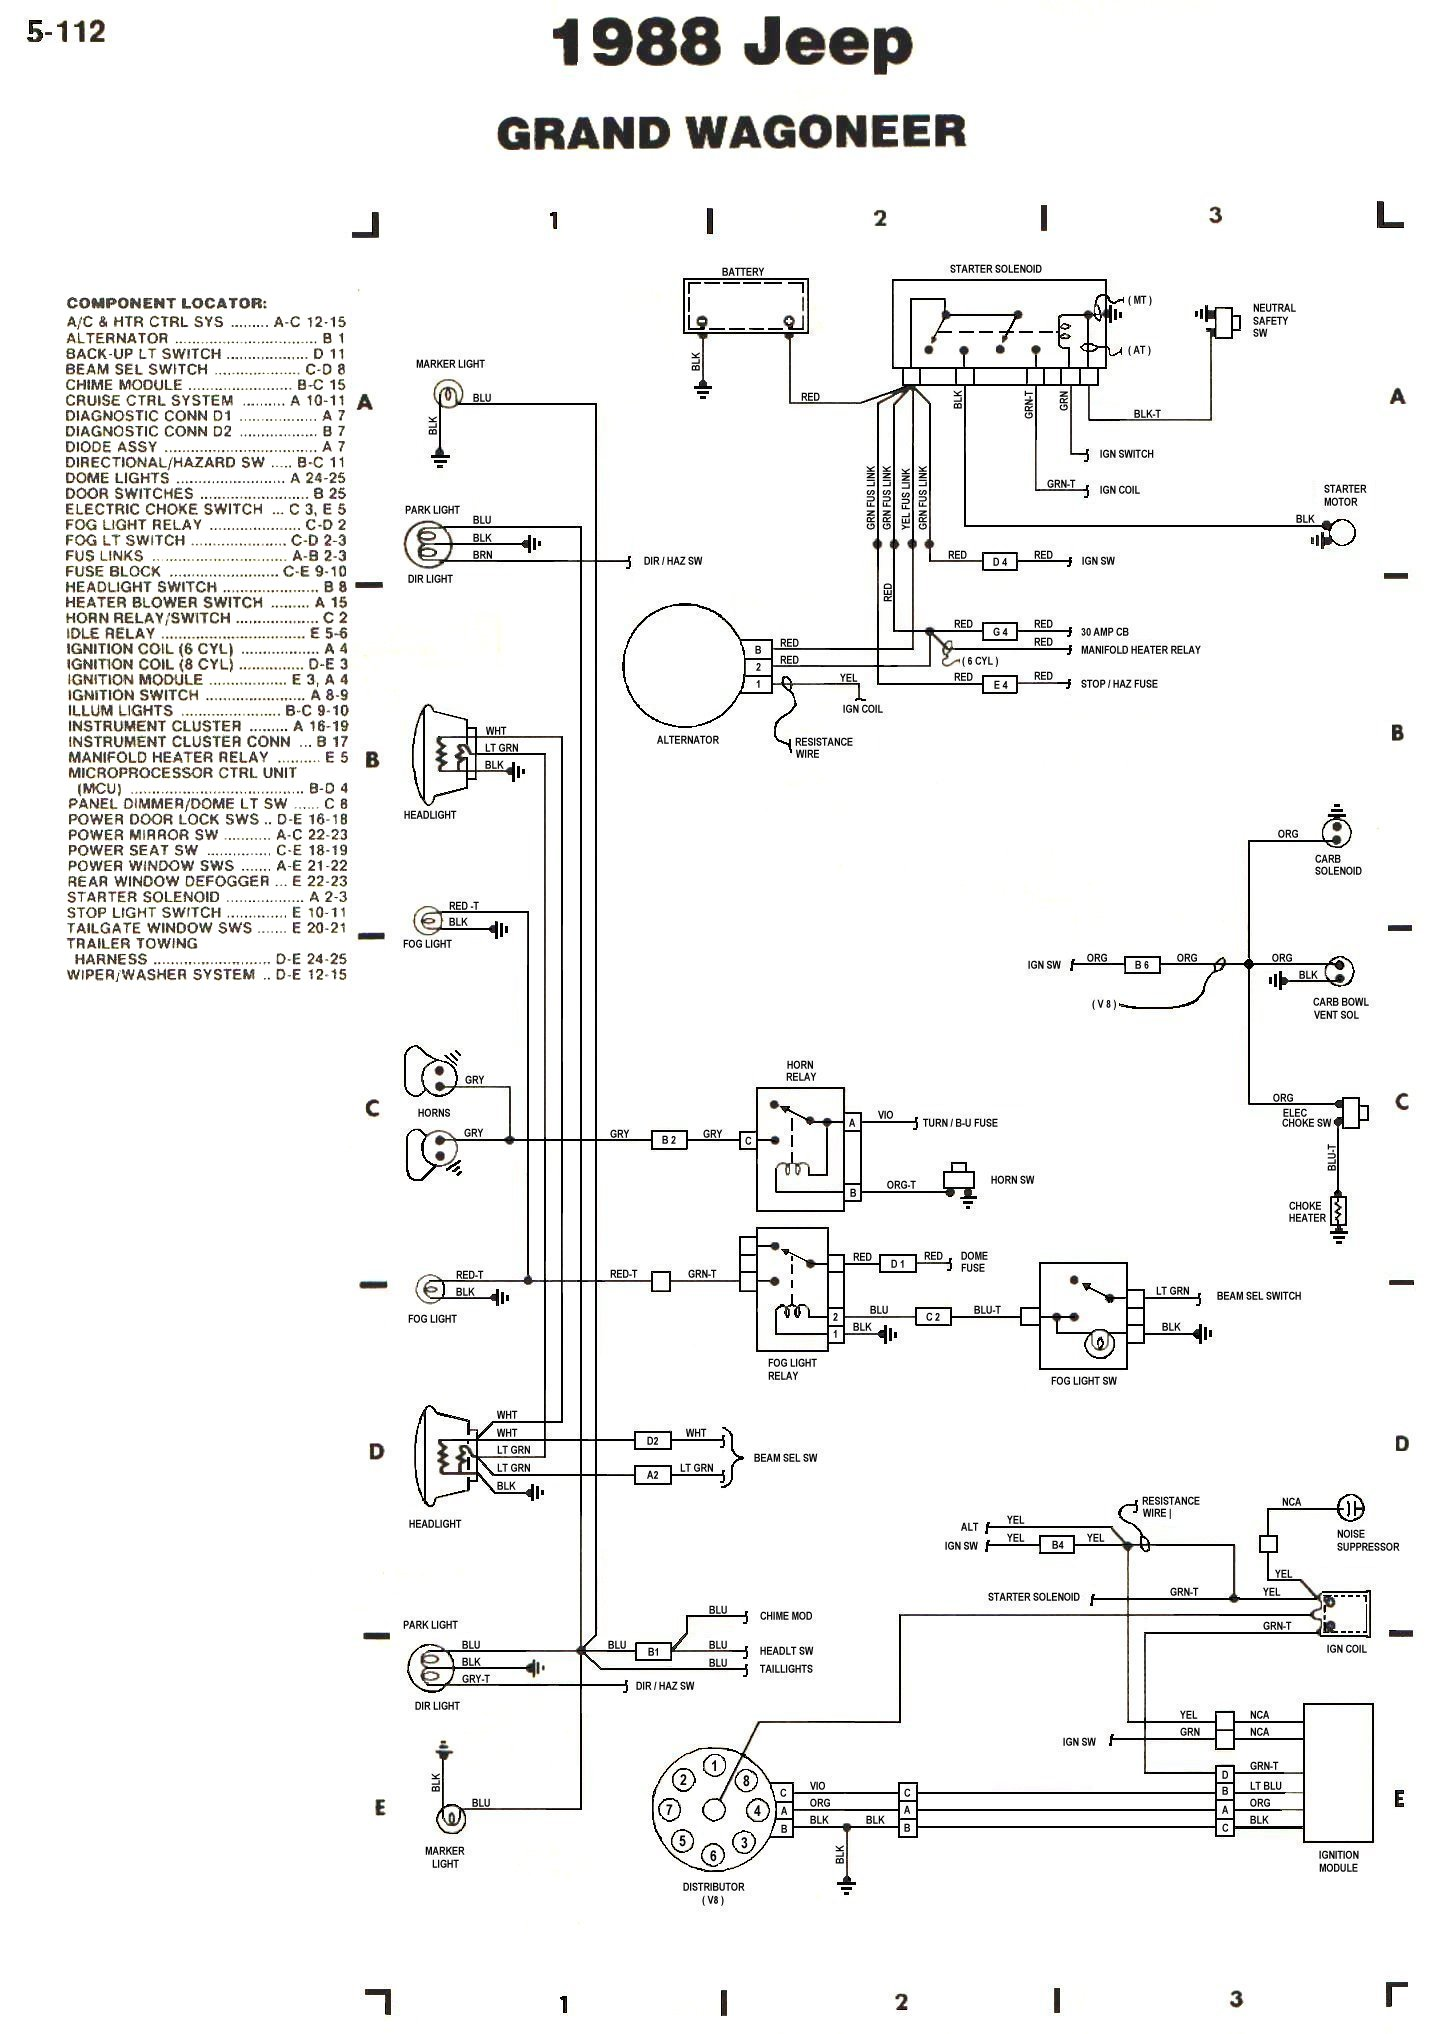 Grand Wagoneer Wiring Diagram Diagrams 1984 Jeep My 1988 Build Thread Ls Swap Began 3 13 14 Full Rh Fsjnetwork Com 1991 1983